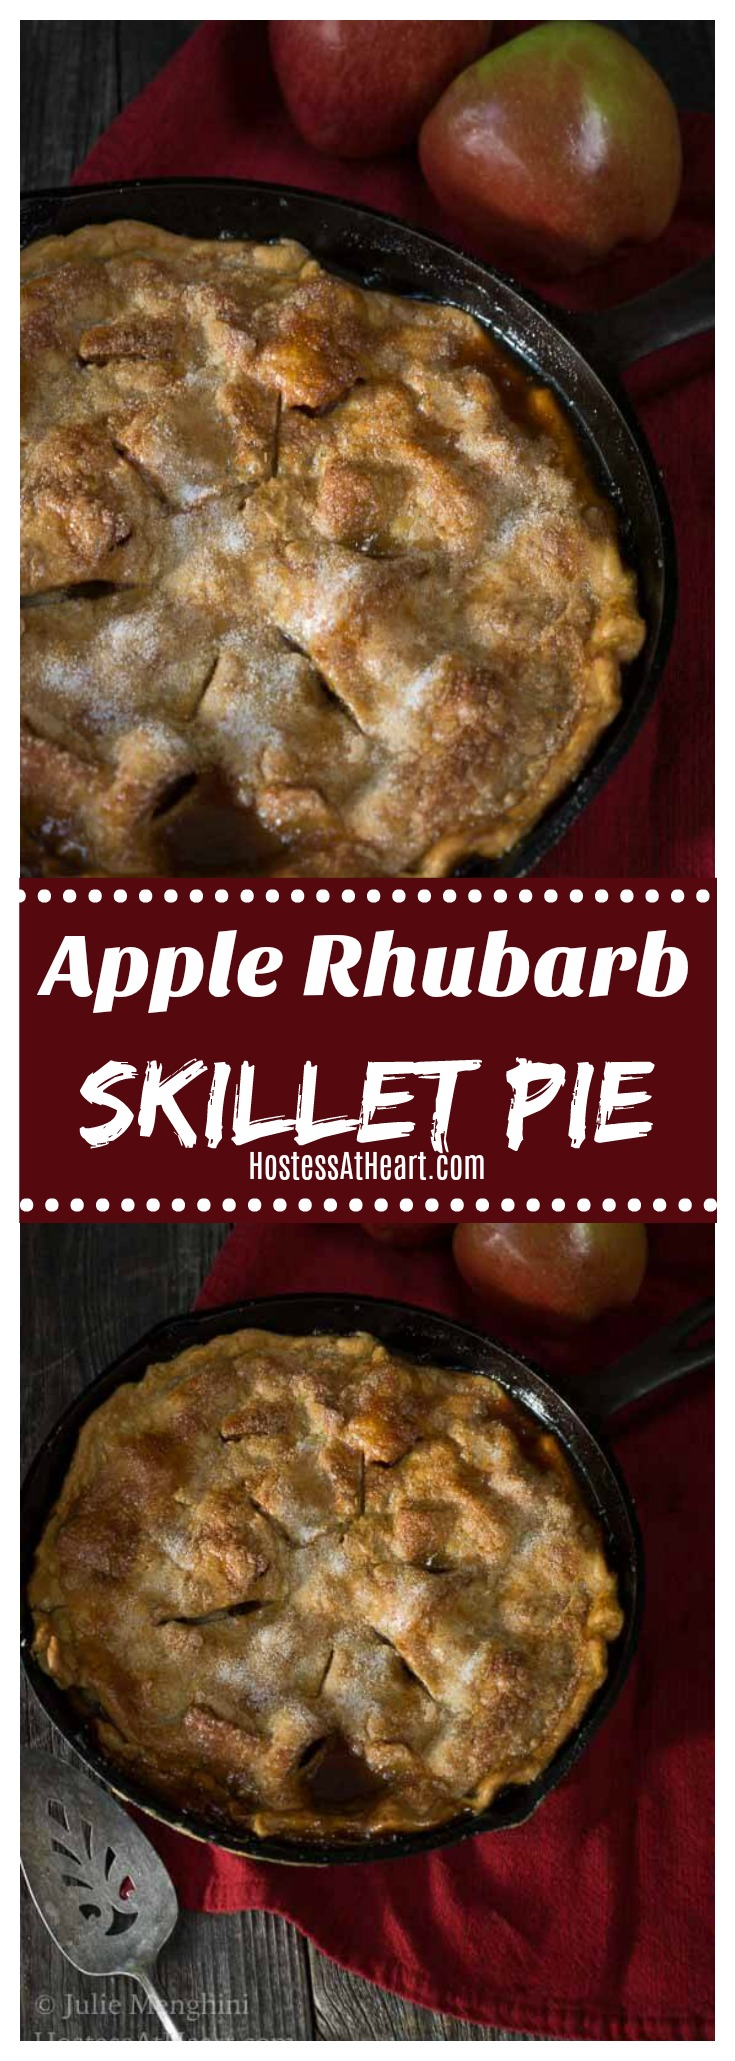 An easy Apple Rhubarb Skillet pie recipe that combines the sweetness of apple and brown sugar with tart rhubarb, all nestled together in a warm buttery pie crust. #pie #dessert #rhubarb